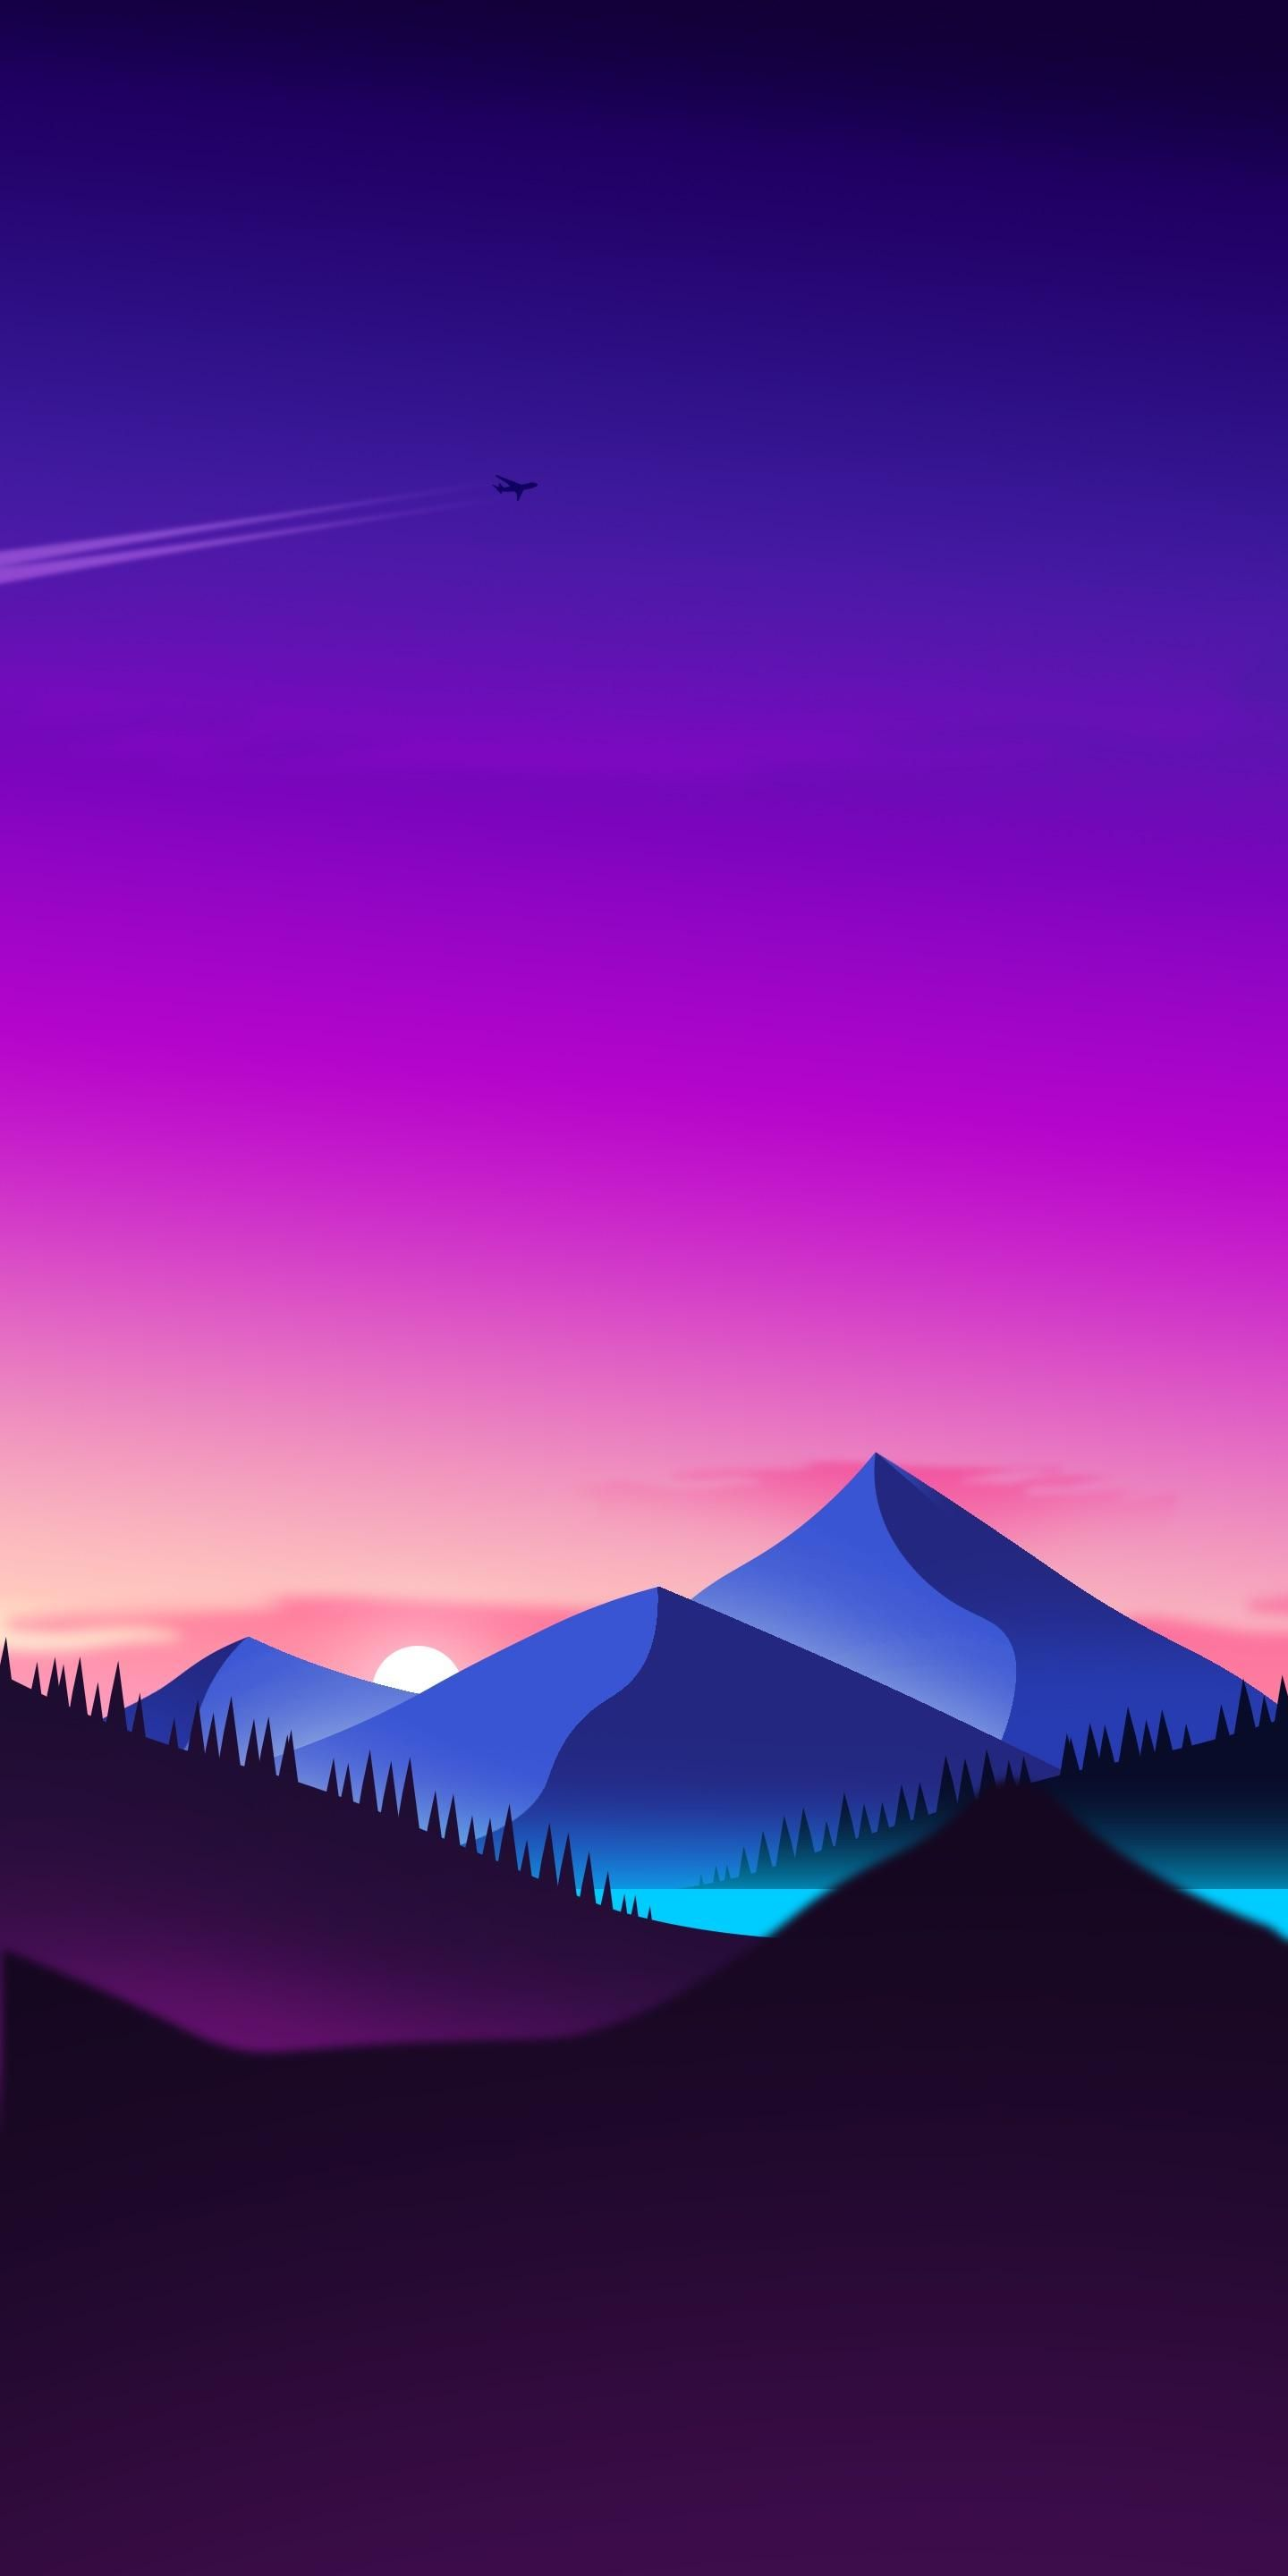 List of Cool Landscape Phone Wallpaper HD Today by reddit.com